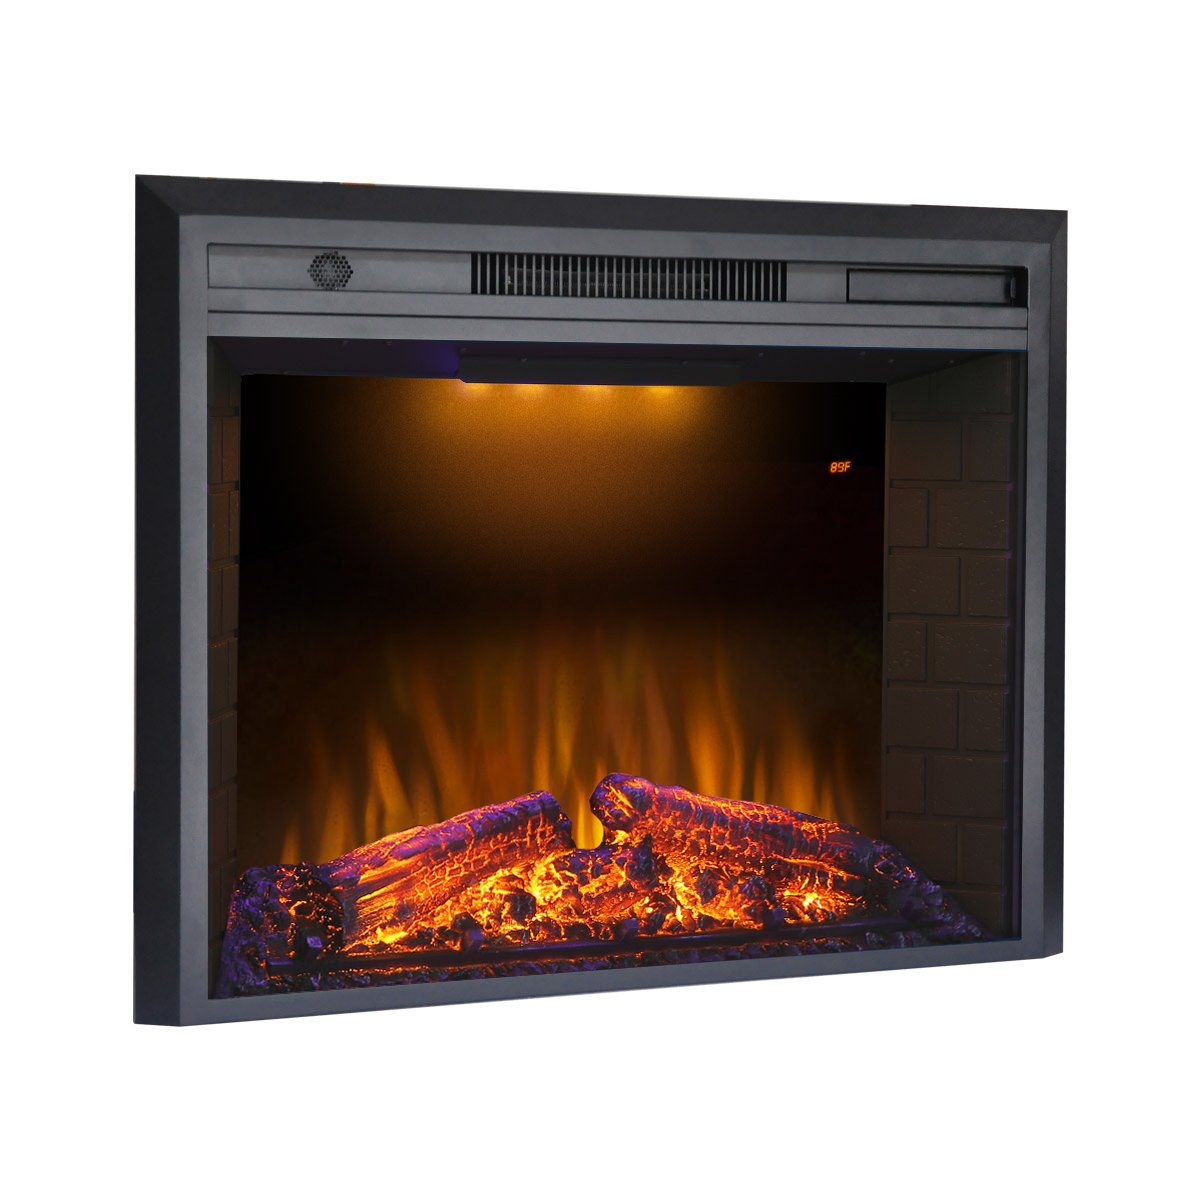 Valuxhome Houselux 36'' 750W/1500W, Electric Fireplace Insert with Log Speaker, Remote Control, Black